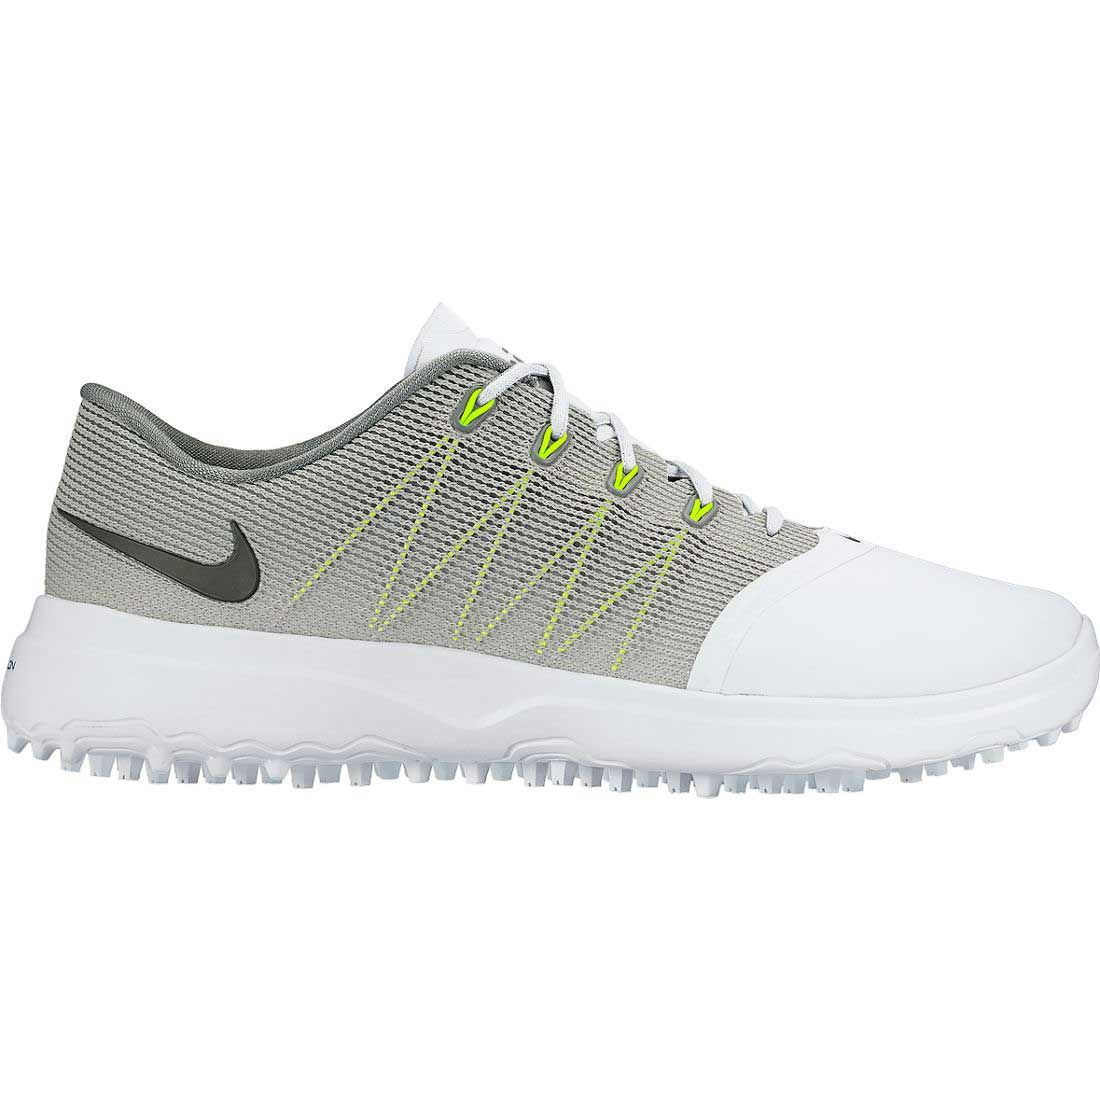 Buy Nike Women S Lunar Empress 2 Golf Shoes White Cool Grey Golf Discount